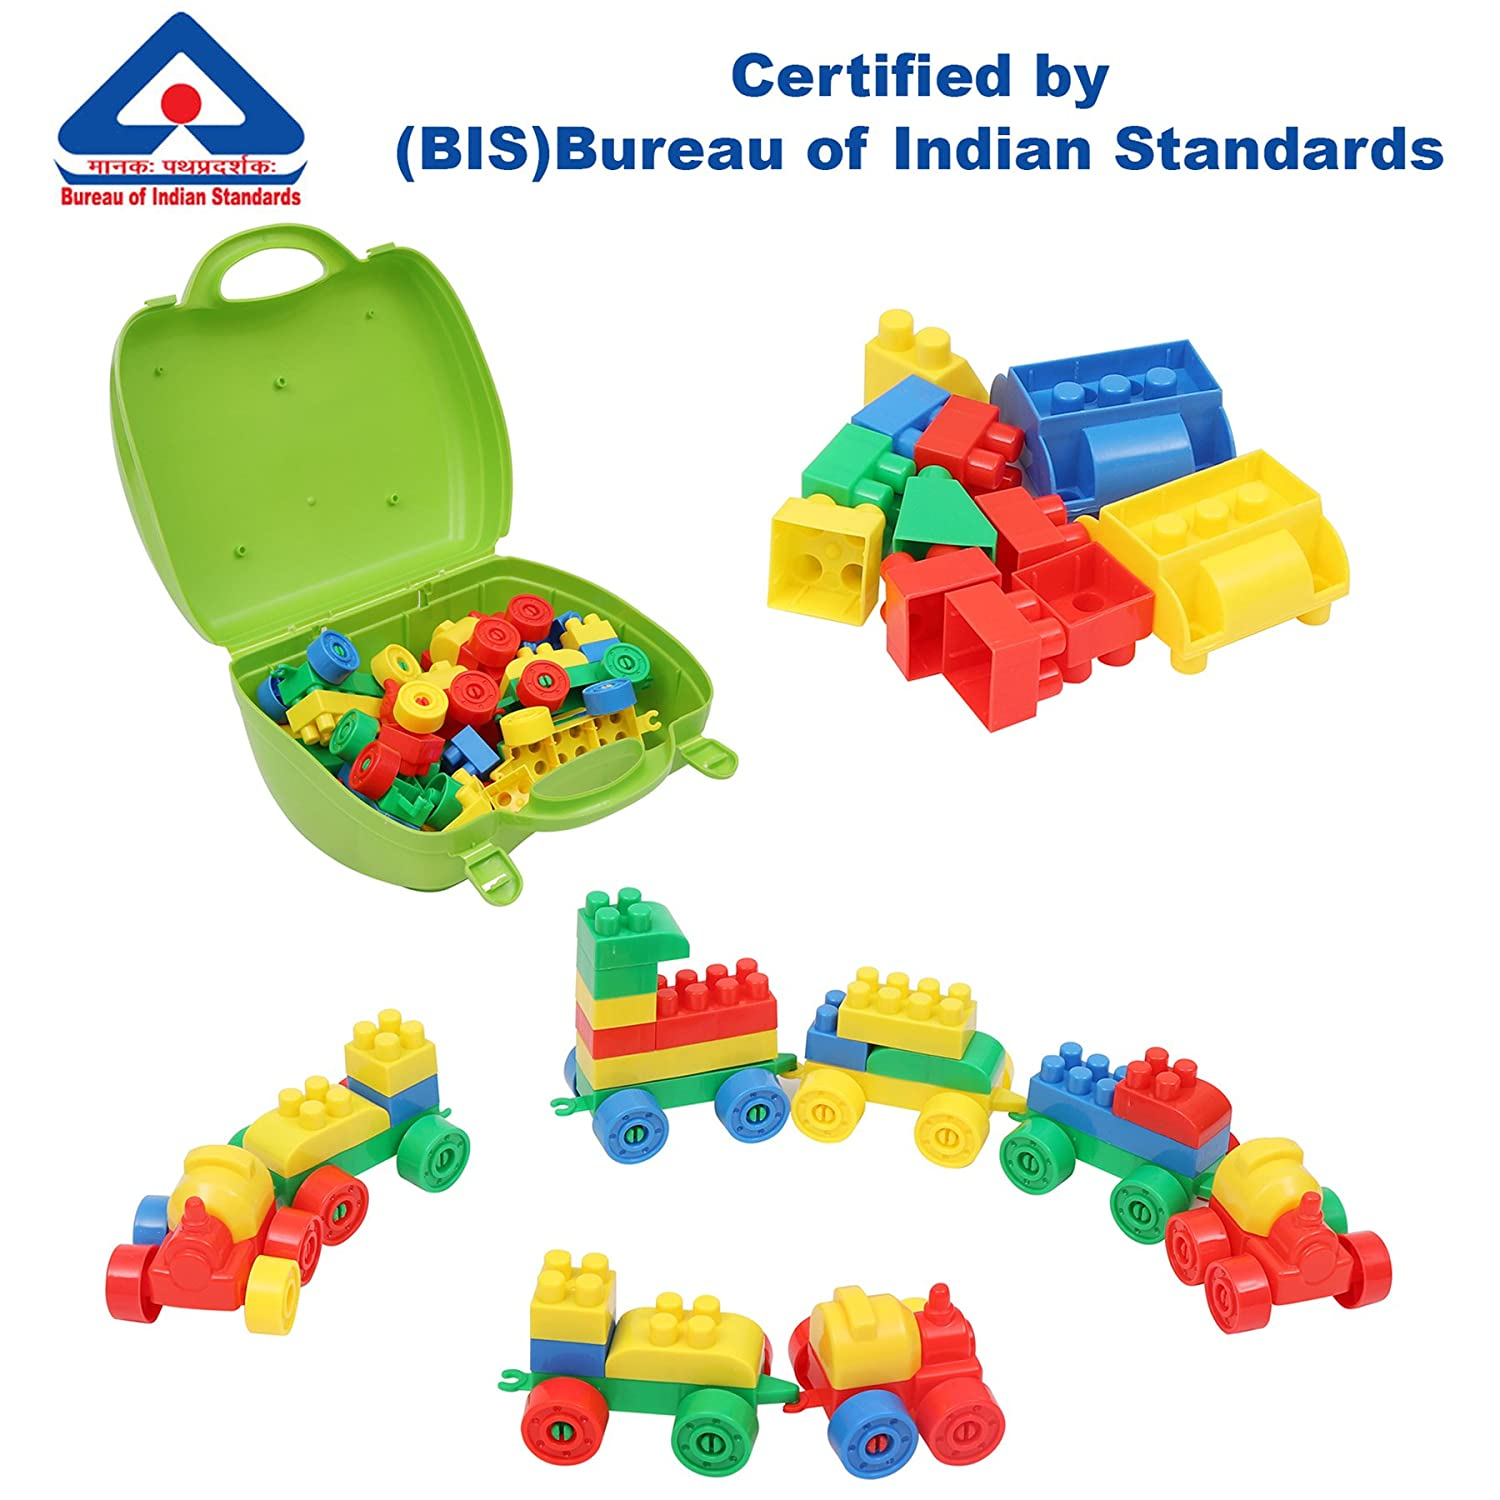 c1bb5aff753 Buy Kurtzy DIY Creative Building Block Puzzle Set Toy Multi Color for Kids  Children 58 Pcs Online at Low Prices in India - Amazon.in